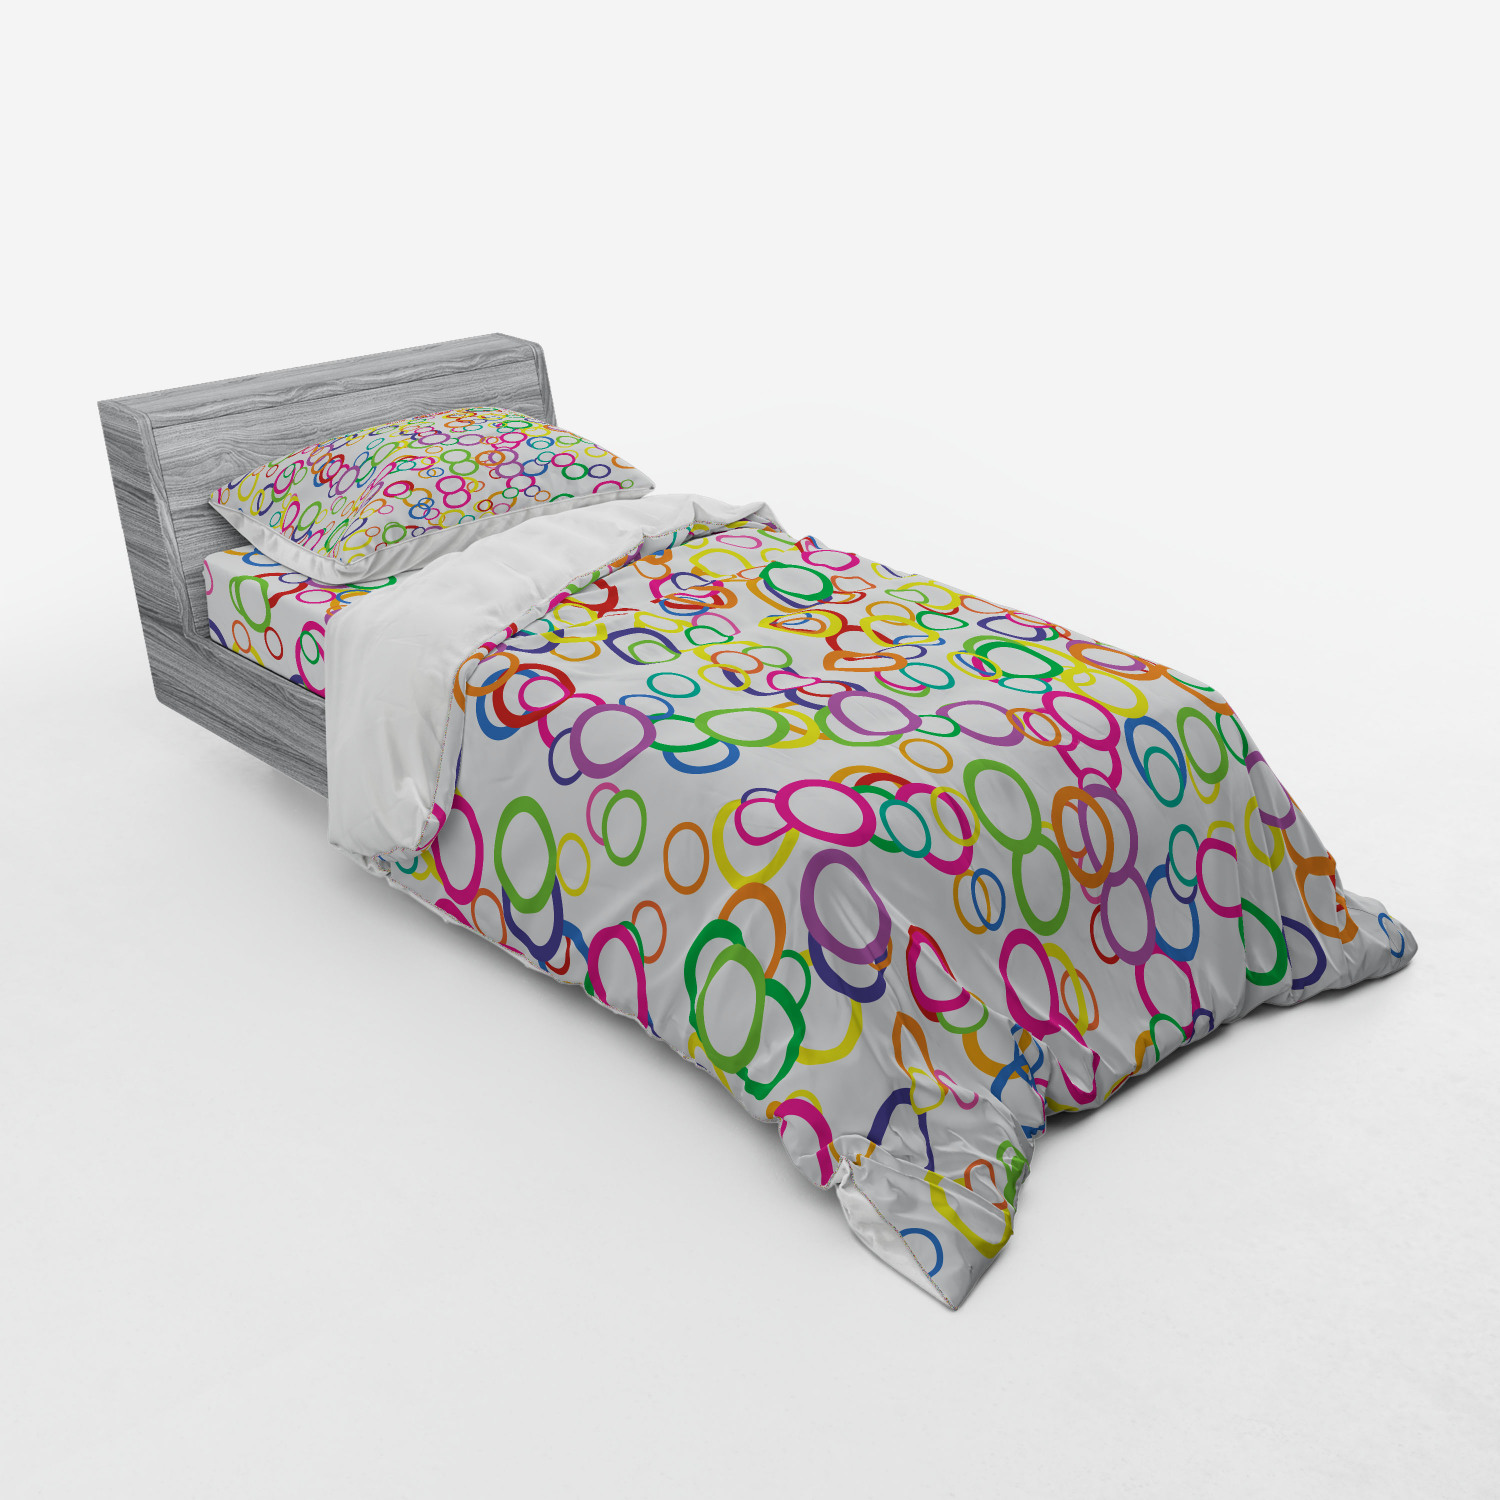 thumbnail 49 - Ambesonne Summer Bedding Set Duvet Cover Sham Fitted Sheet in 3 Sizes